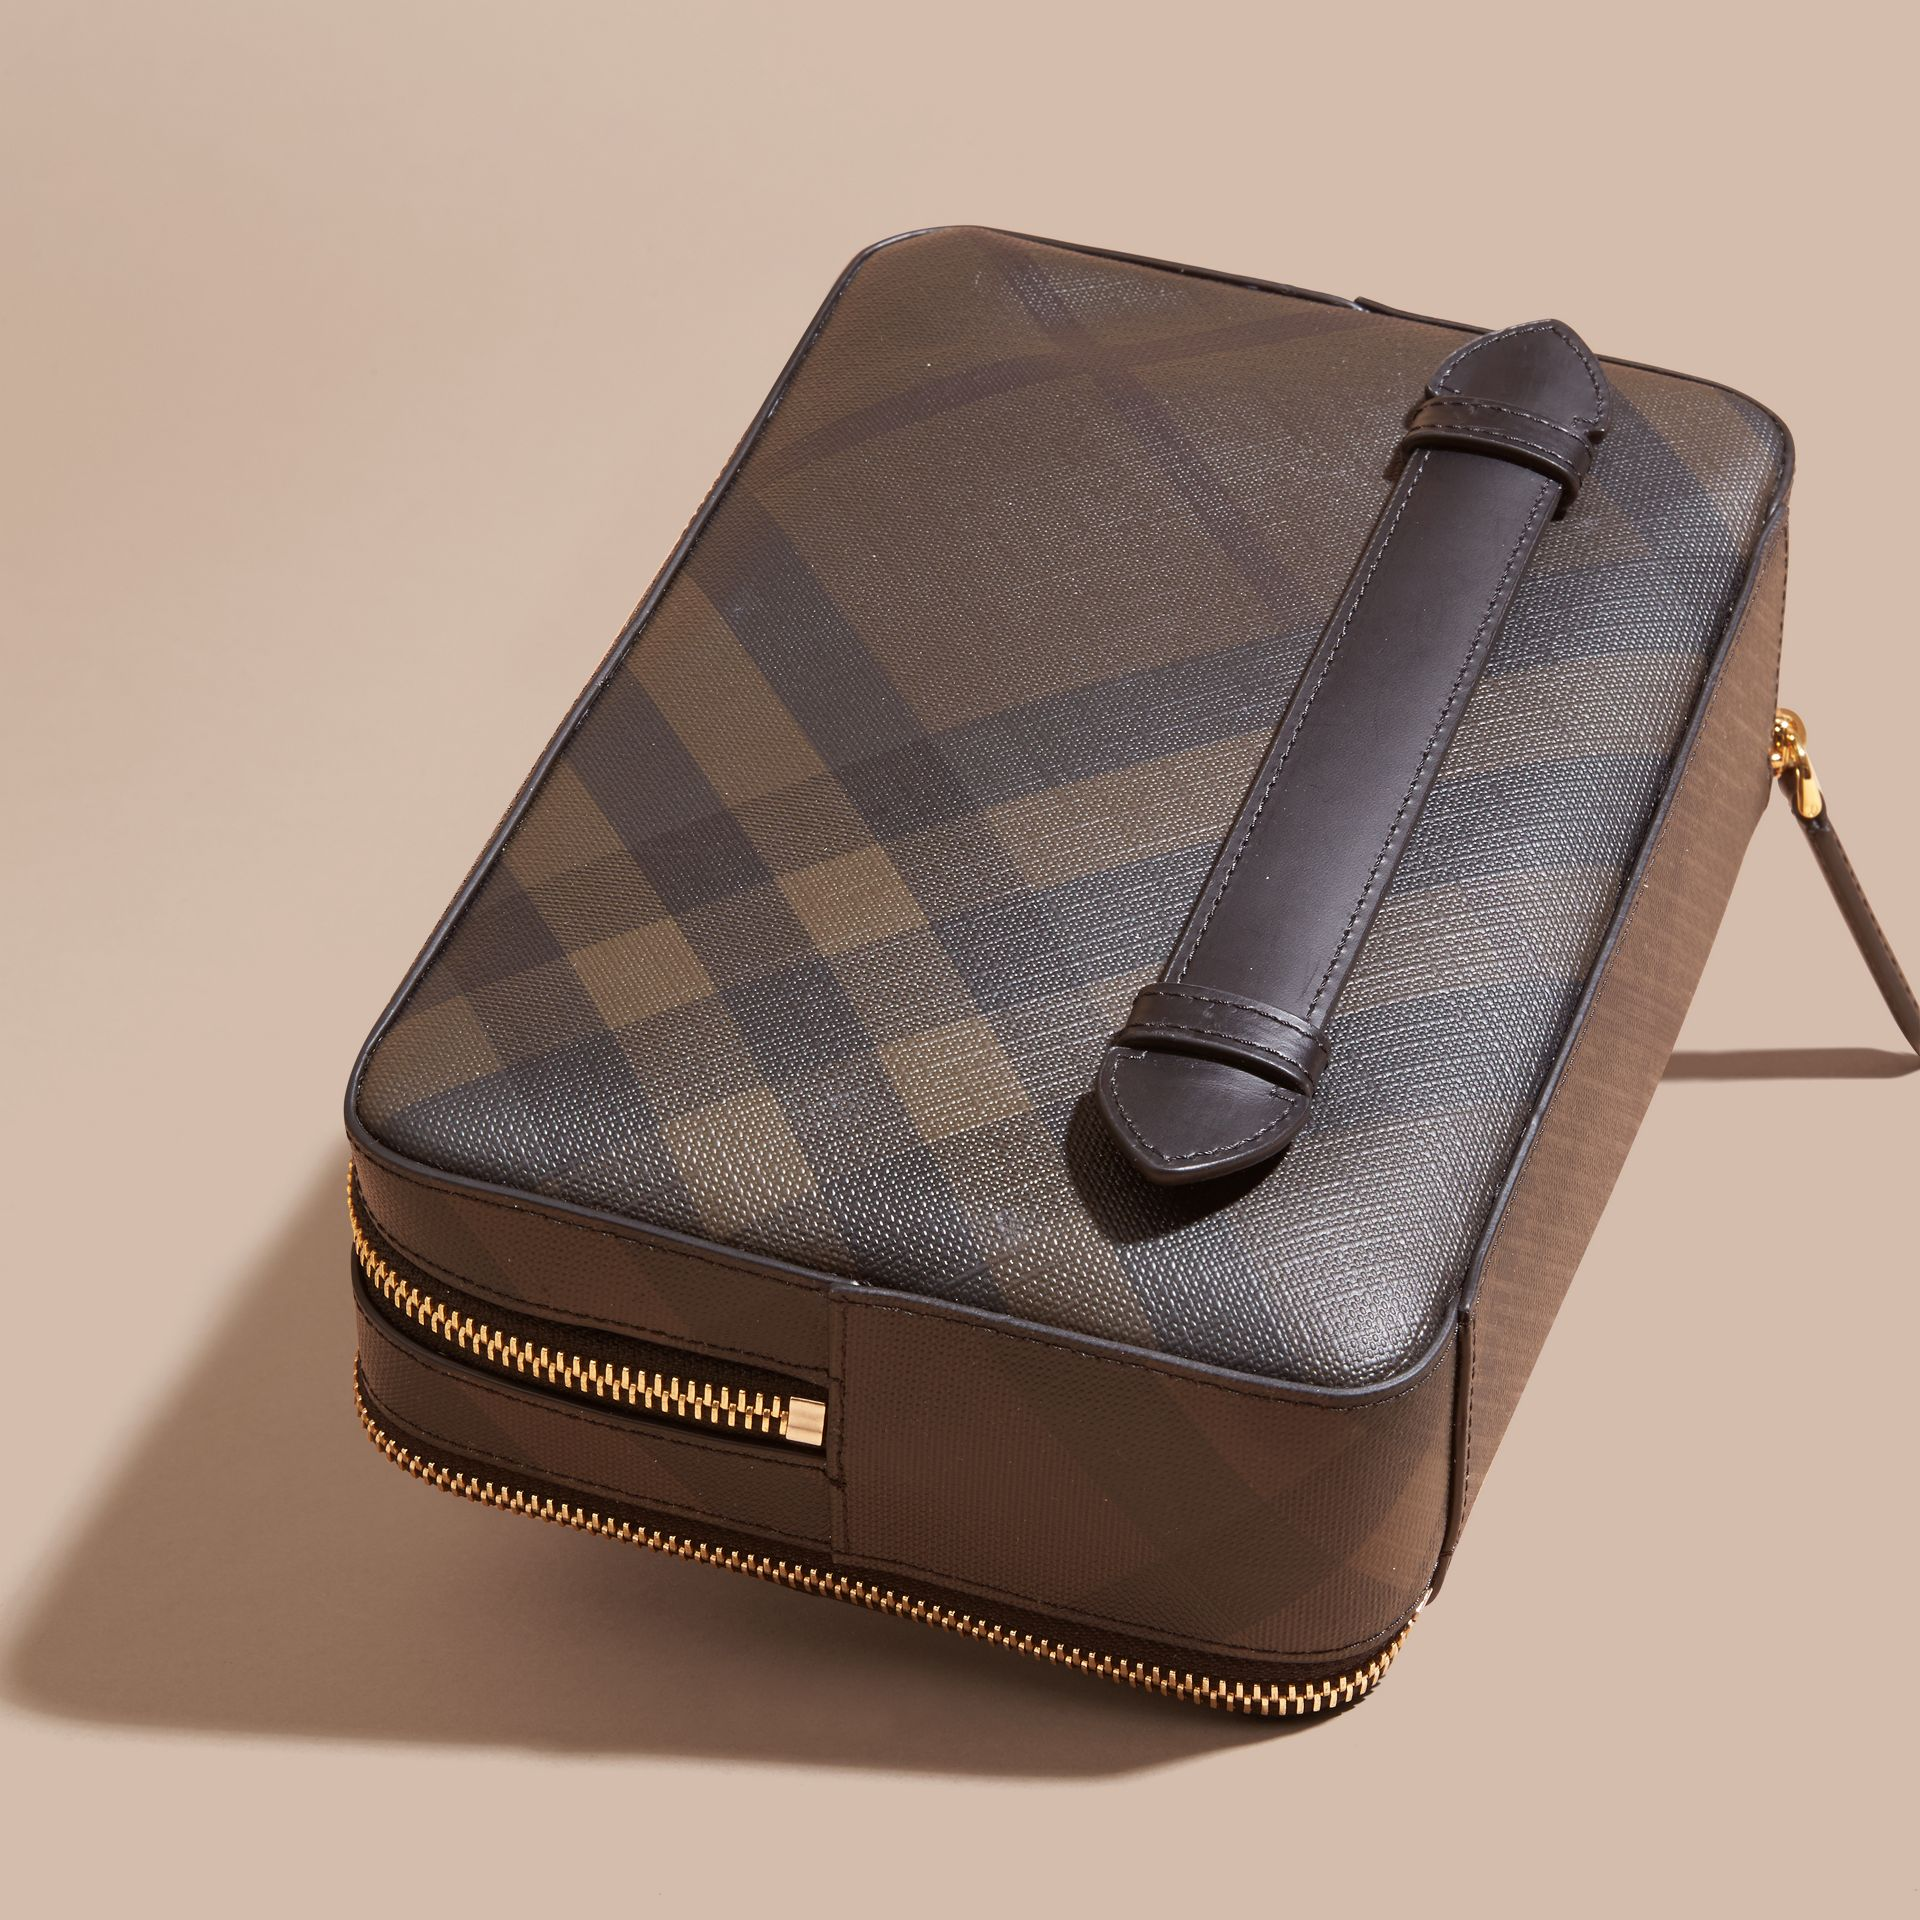 Leather-trimmed London Check Pouch in Chocolate/black - Men | Burberry United States - gallery image 3